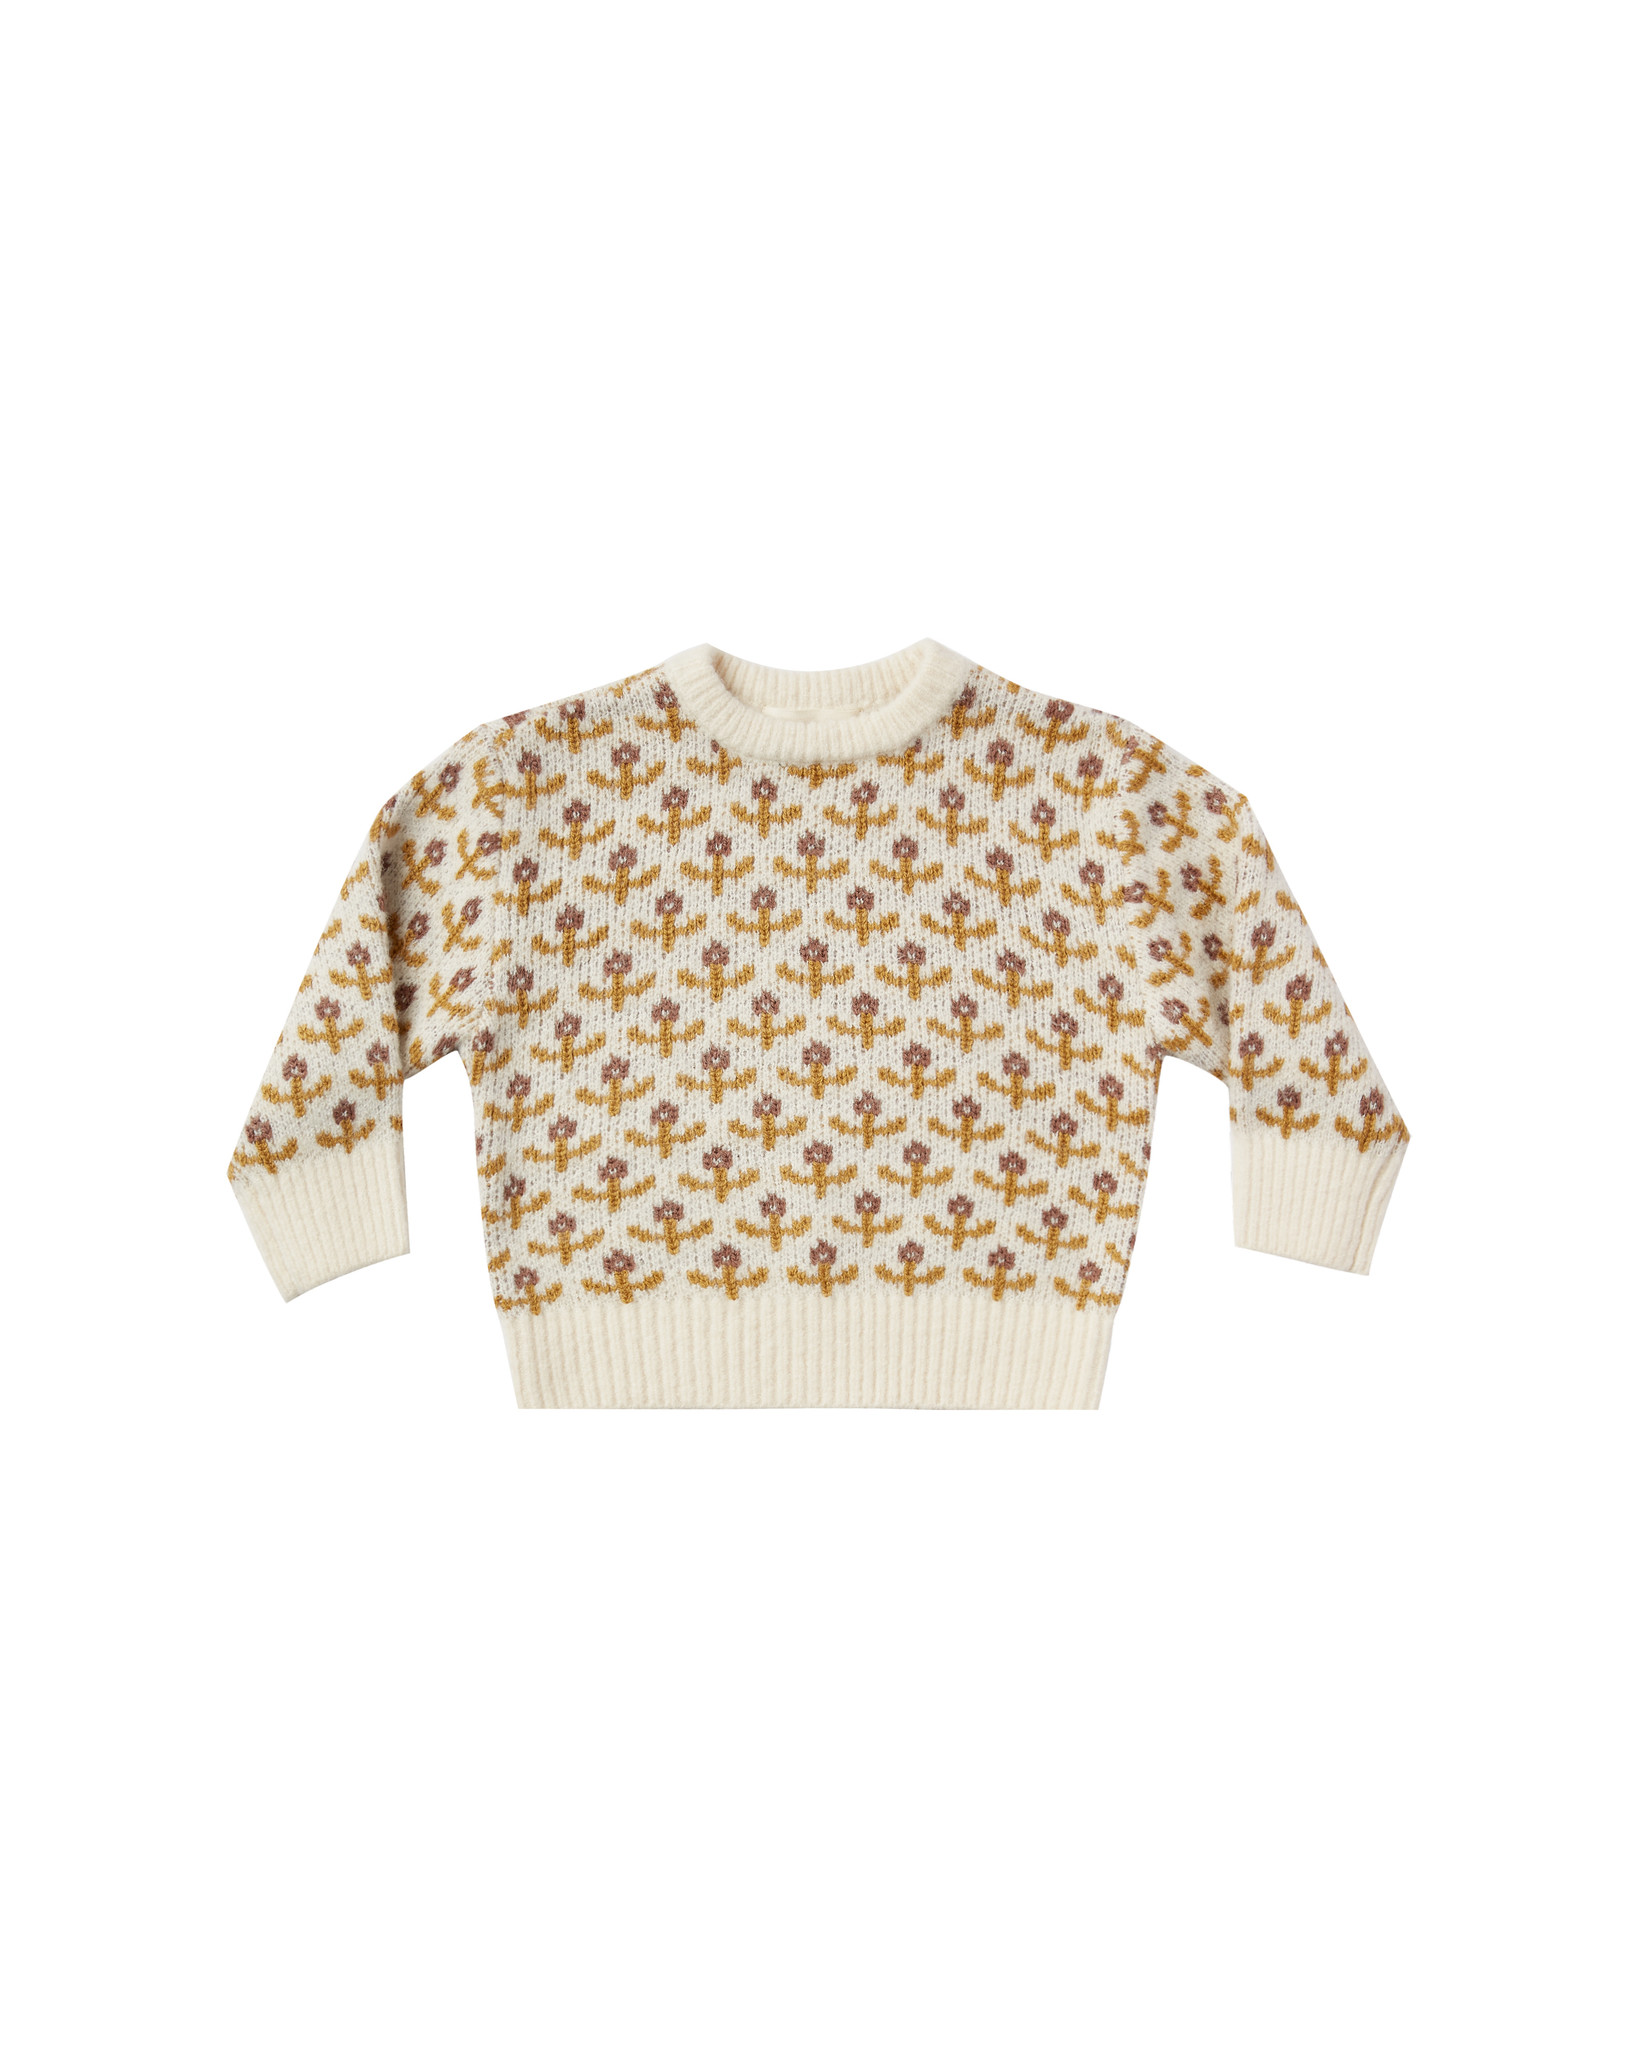 Rylee & Cru Flower Stitch Knit Pullover